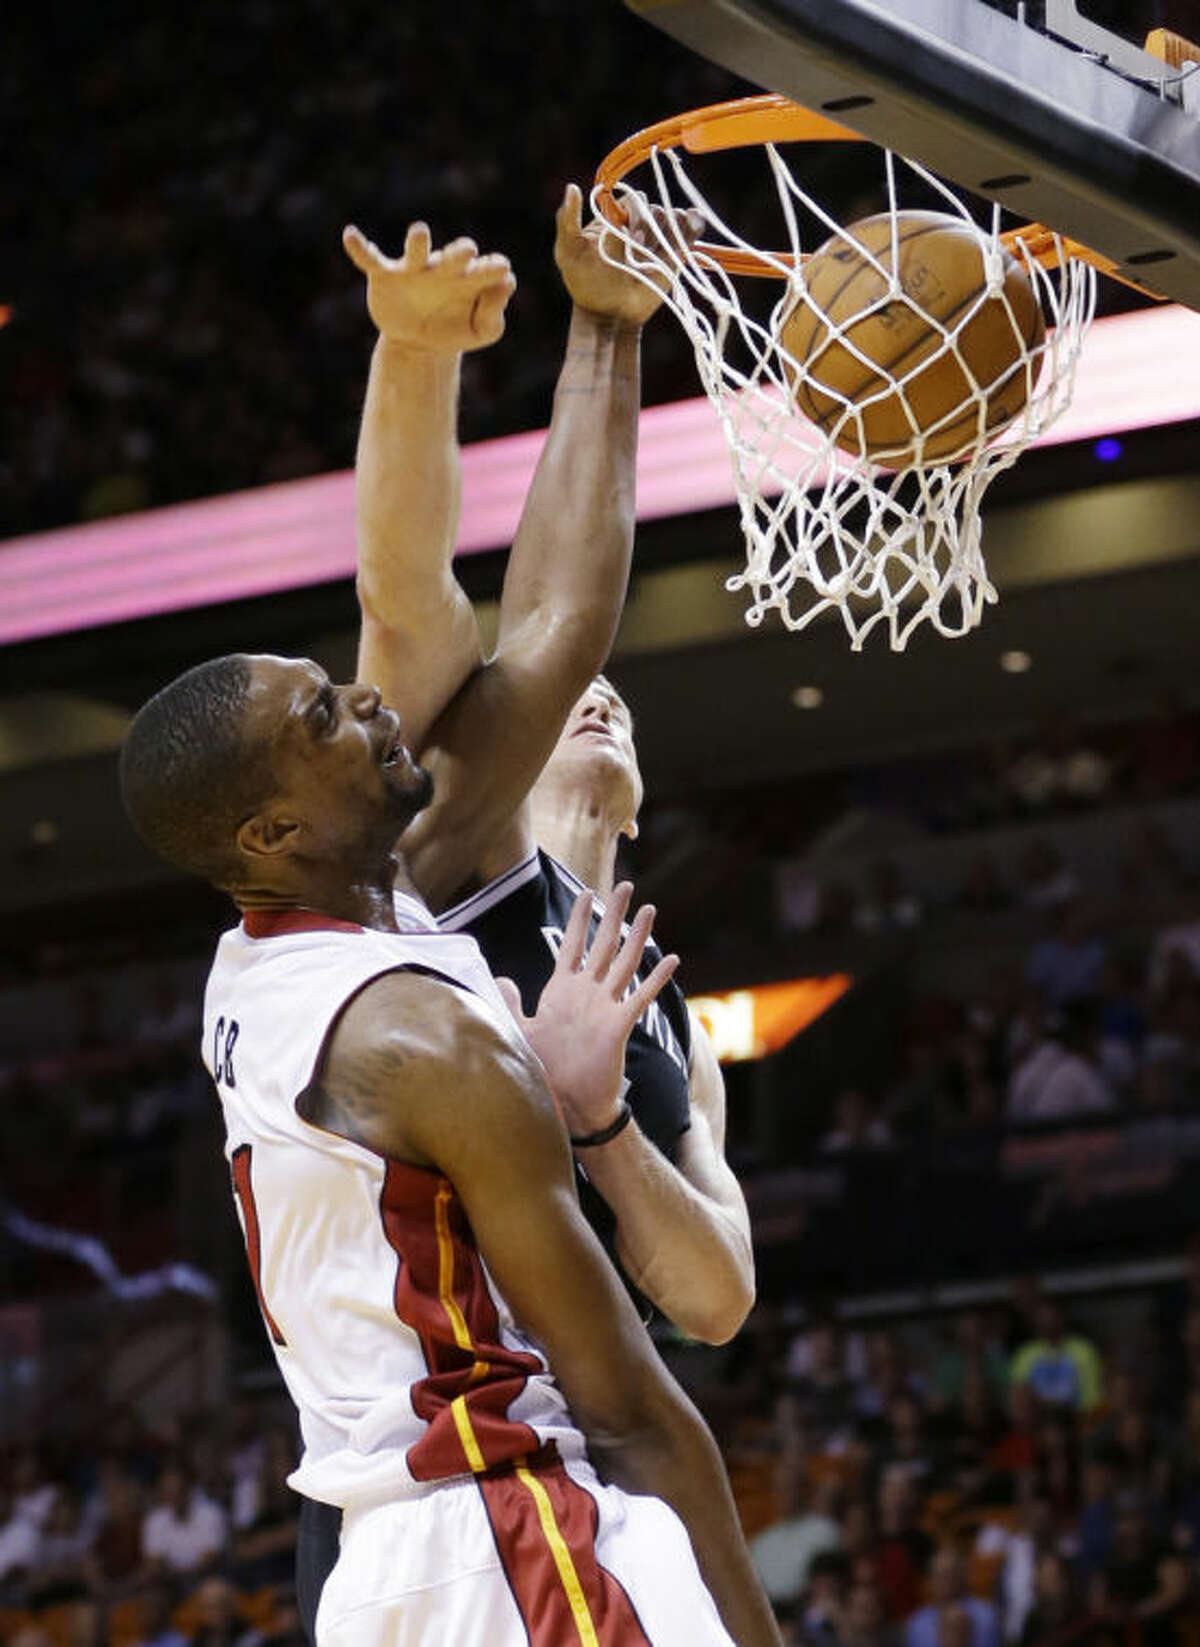 Miami Heat center Chris Bosh, foreground dunks the ball against Brooklyn Nets forward Mason Plumlee during the first half of an NBA basketball game, Wednesday, March 12, 2014, in Miami. (AP Photo/Wilfredo Lee)